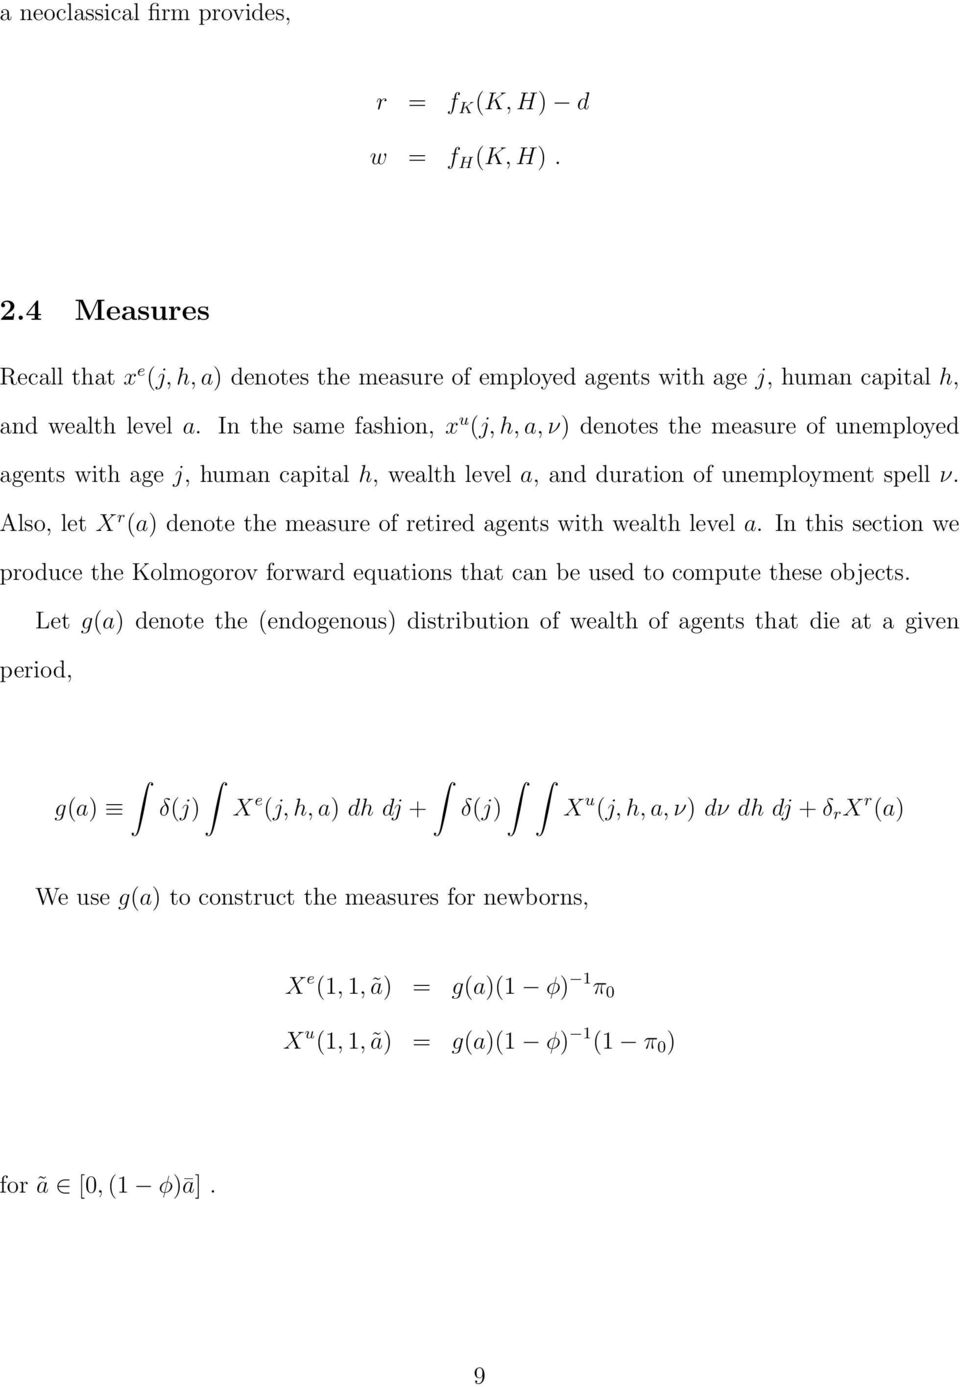 Also, let X r (a) denote the measure of retired agents with wealth level a. In this section we produce the Kolmogorov forward equations that can be used to compute these objects.